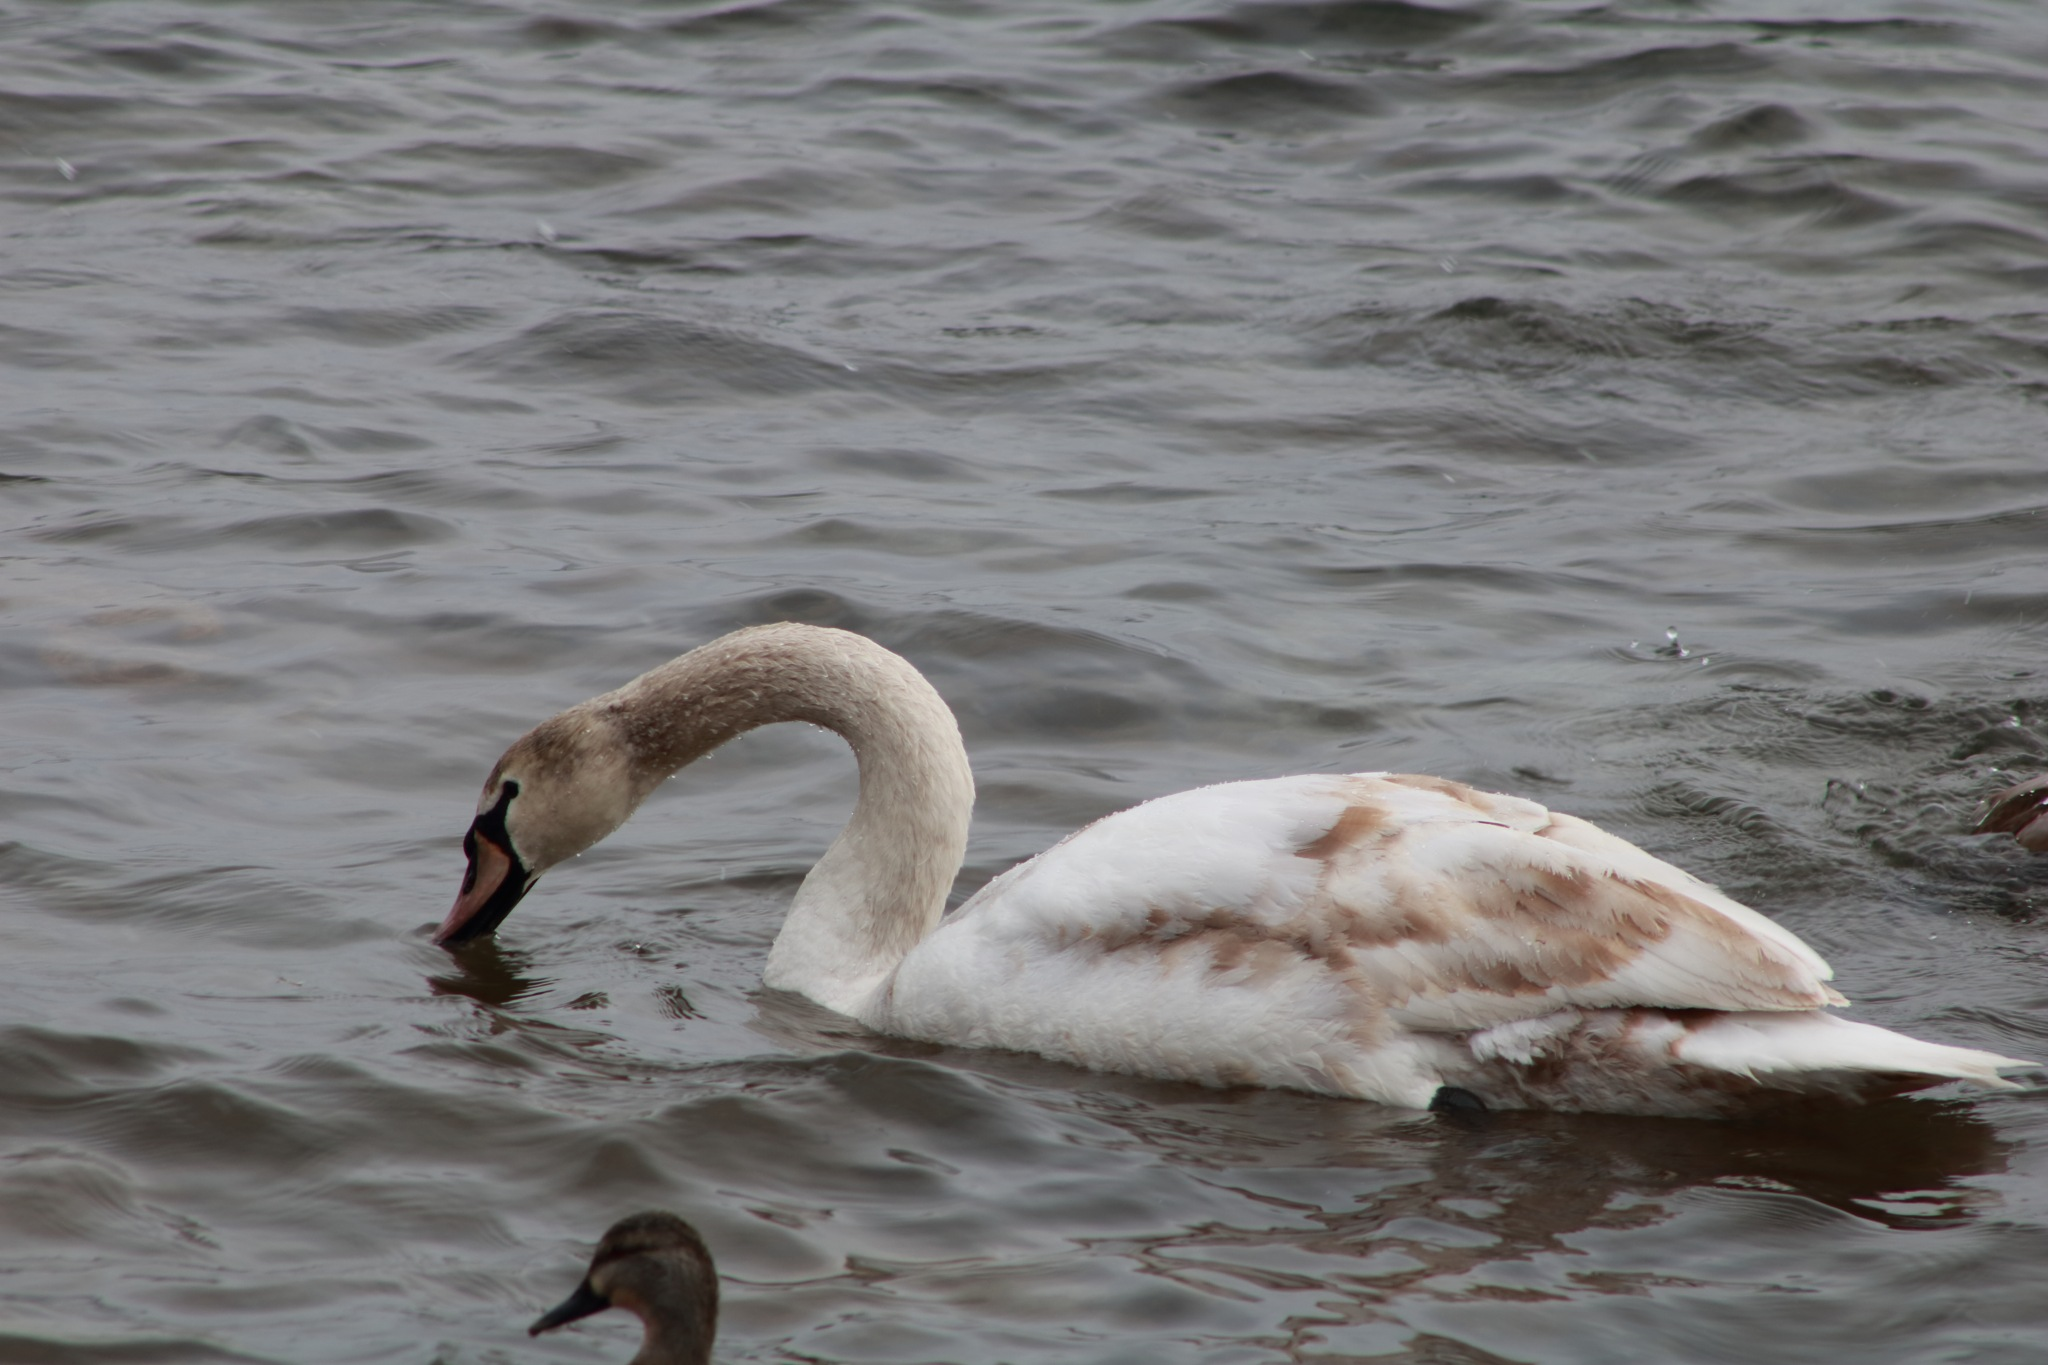 swan on the lake by Peter O Merz